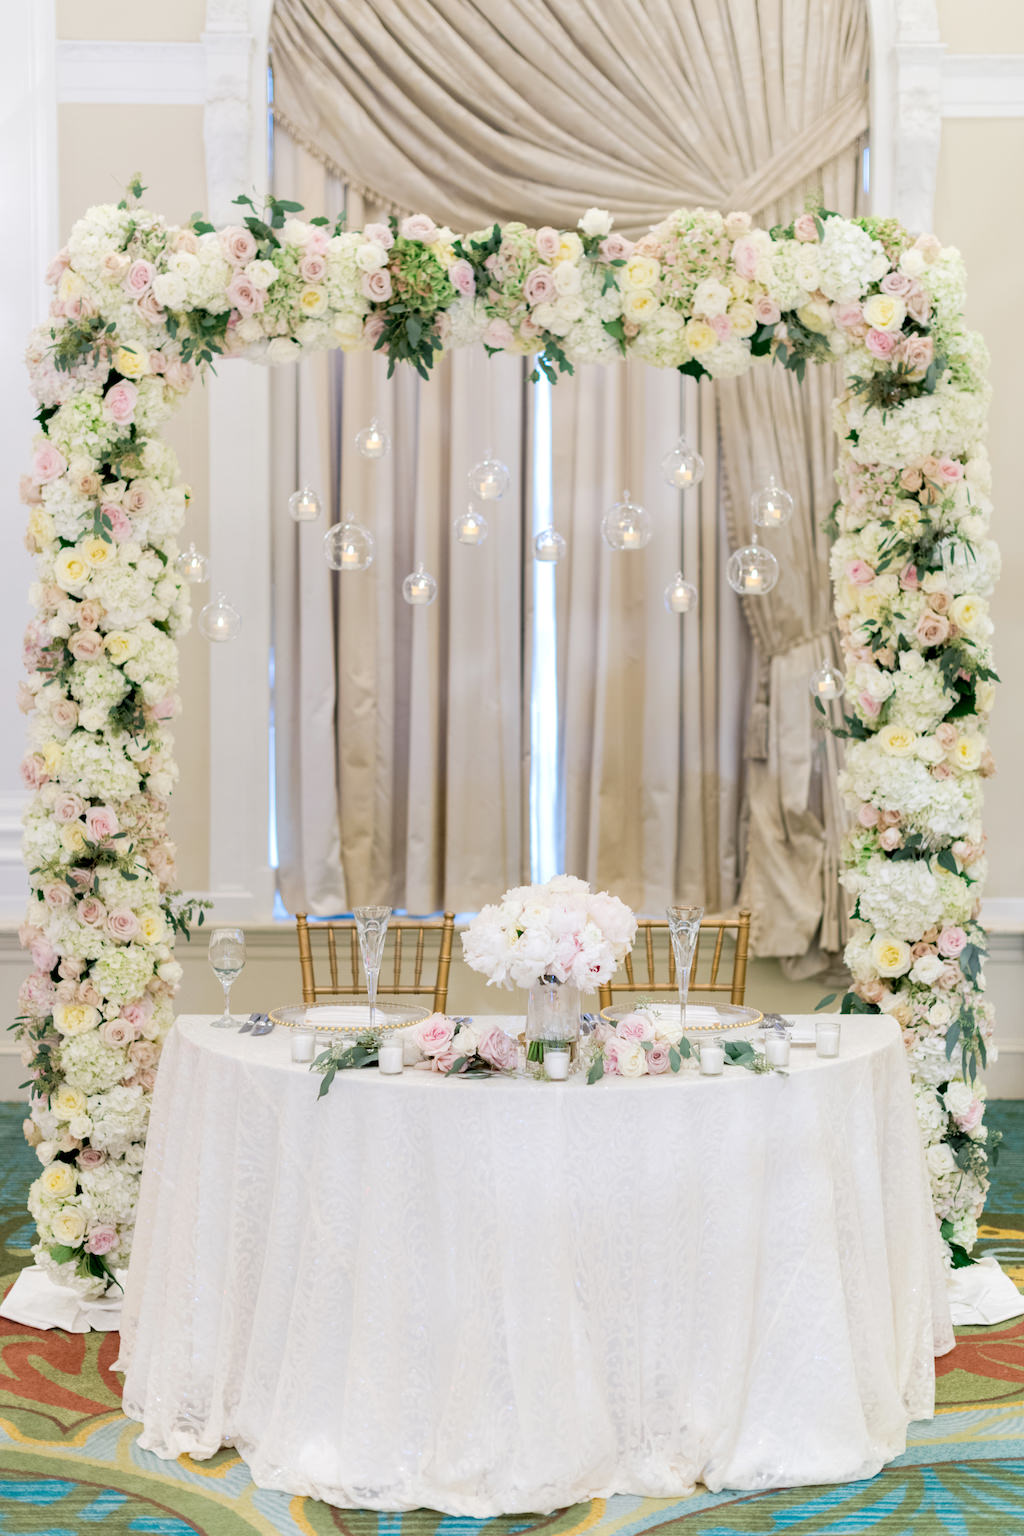 Wedding Reception Sweetheart Table Decor Blush Pink White And